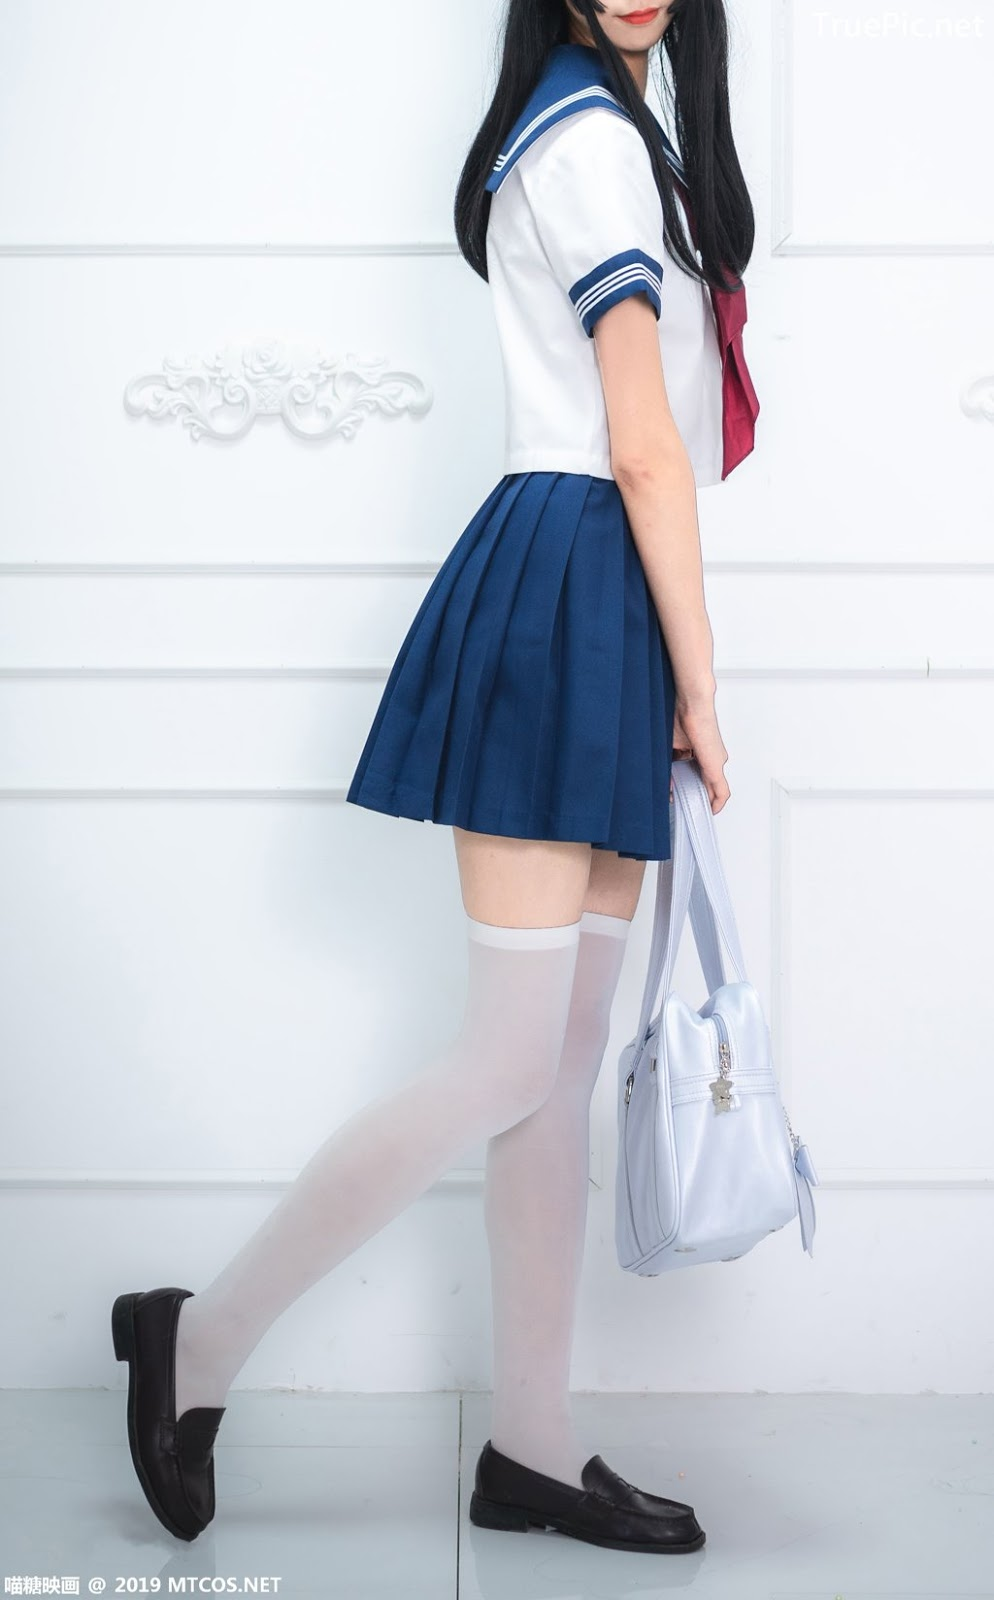 Image-MTCos-喵糖映画-Vol-012–Chinese-Pretty-Model-Cute-School-Girl-With-Sailor-Dress-TruePic.net- Picture-6